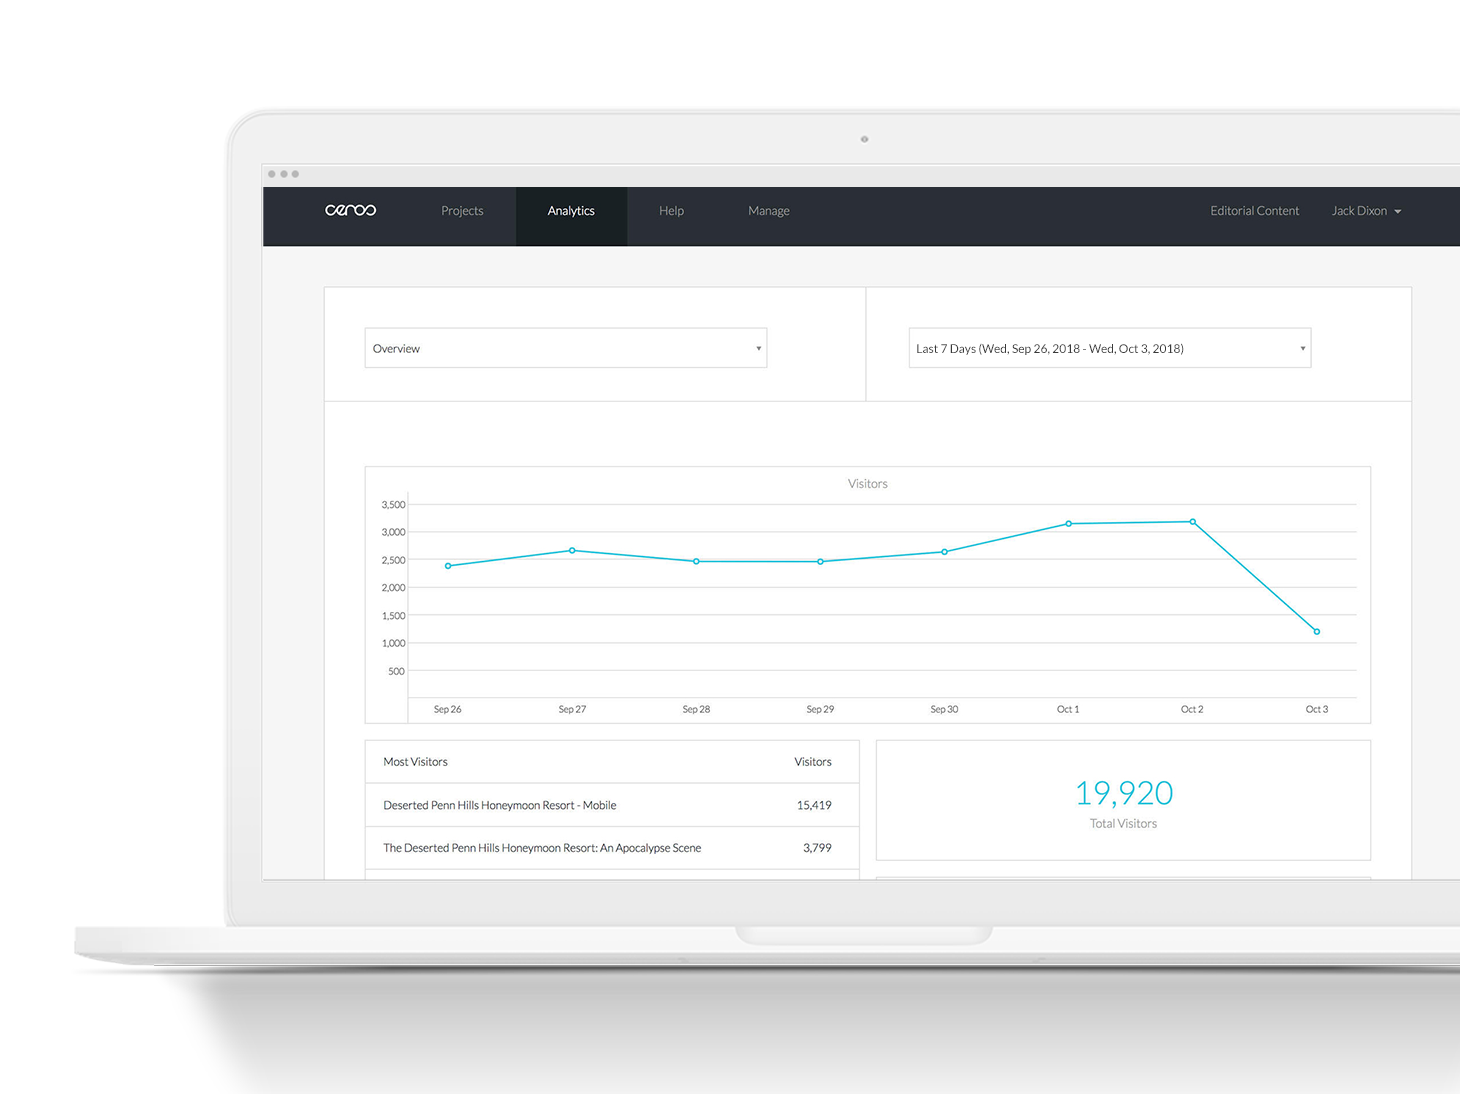 Check out how your content is performing on a granular level with our built-in analytics tool.